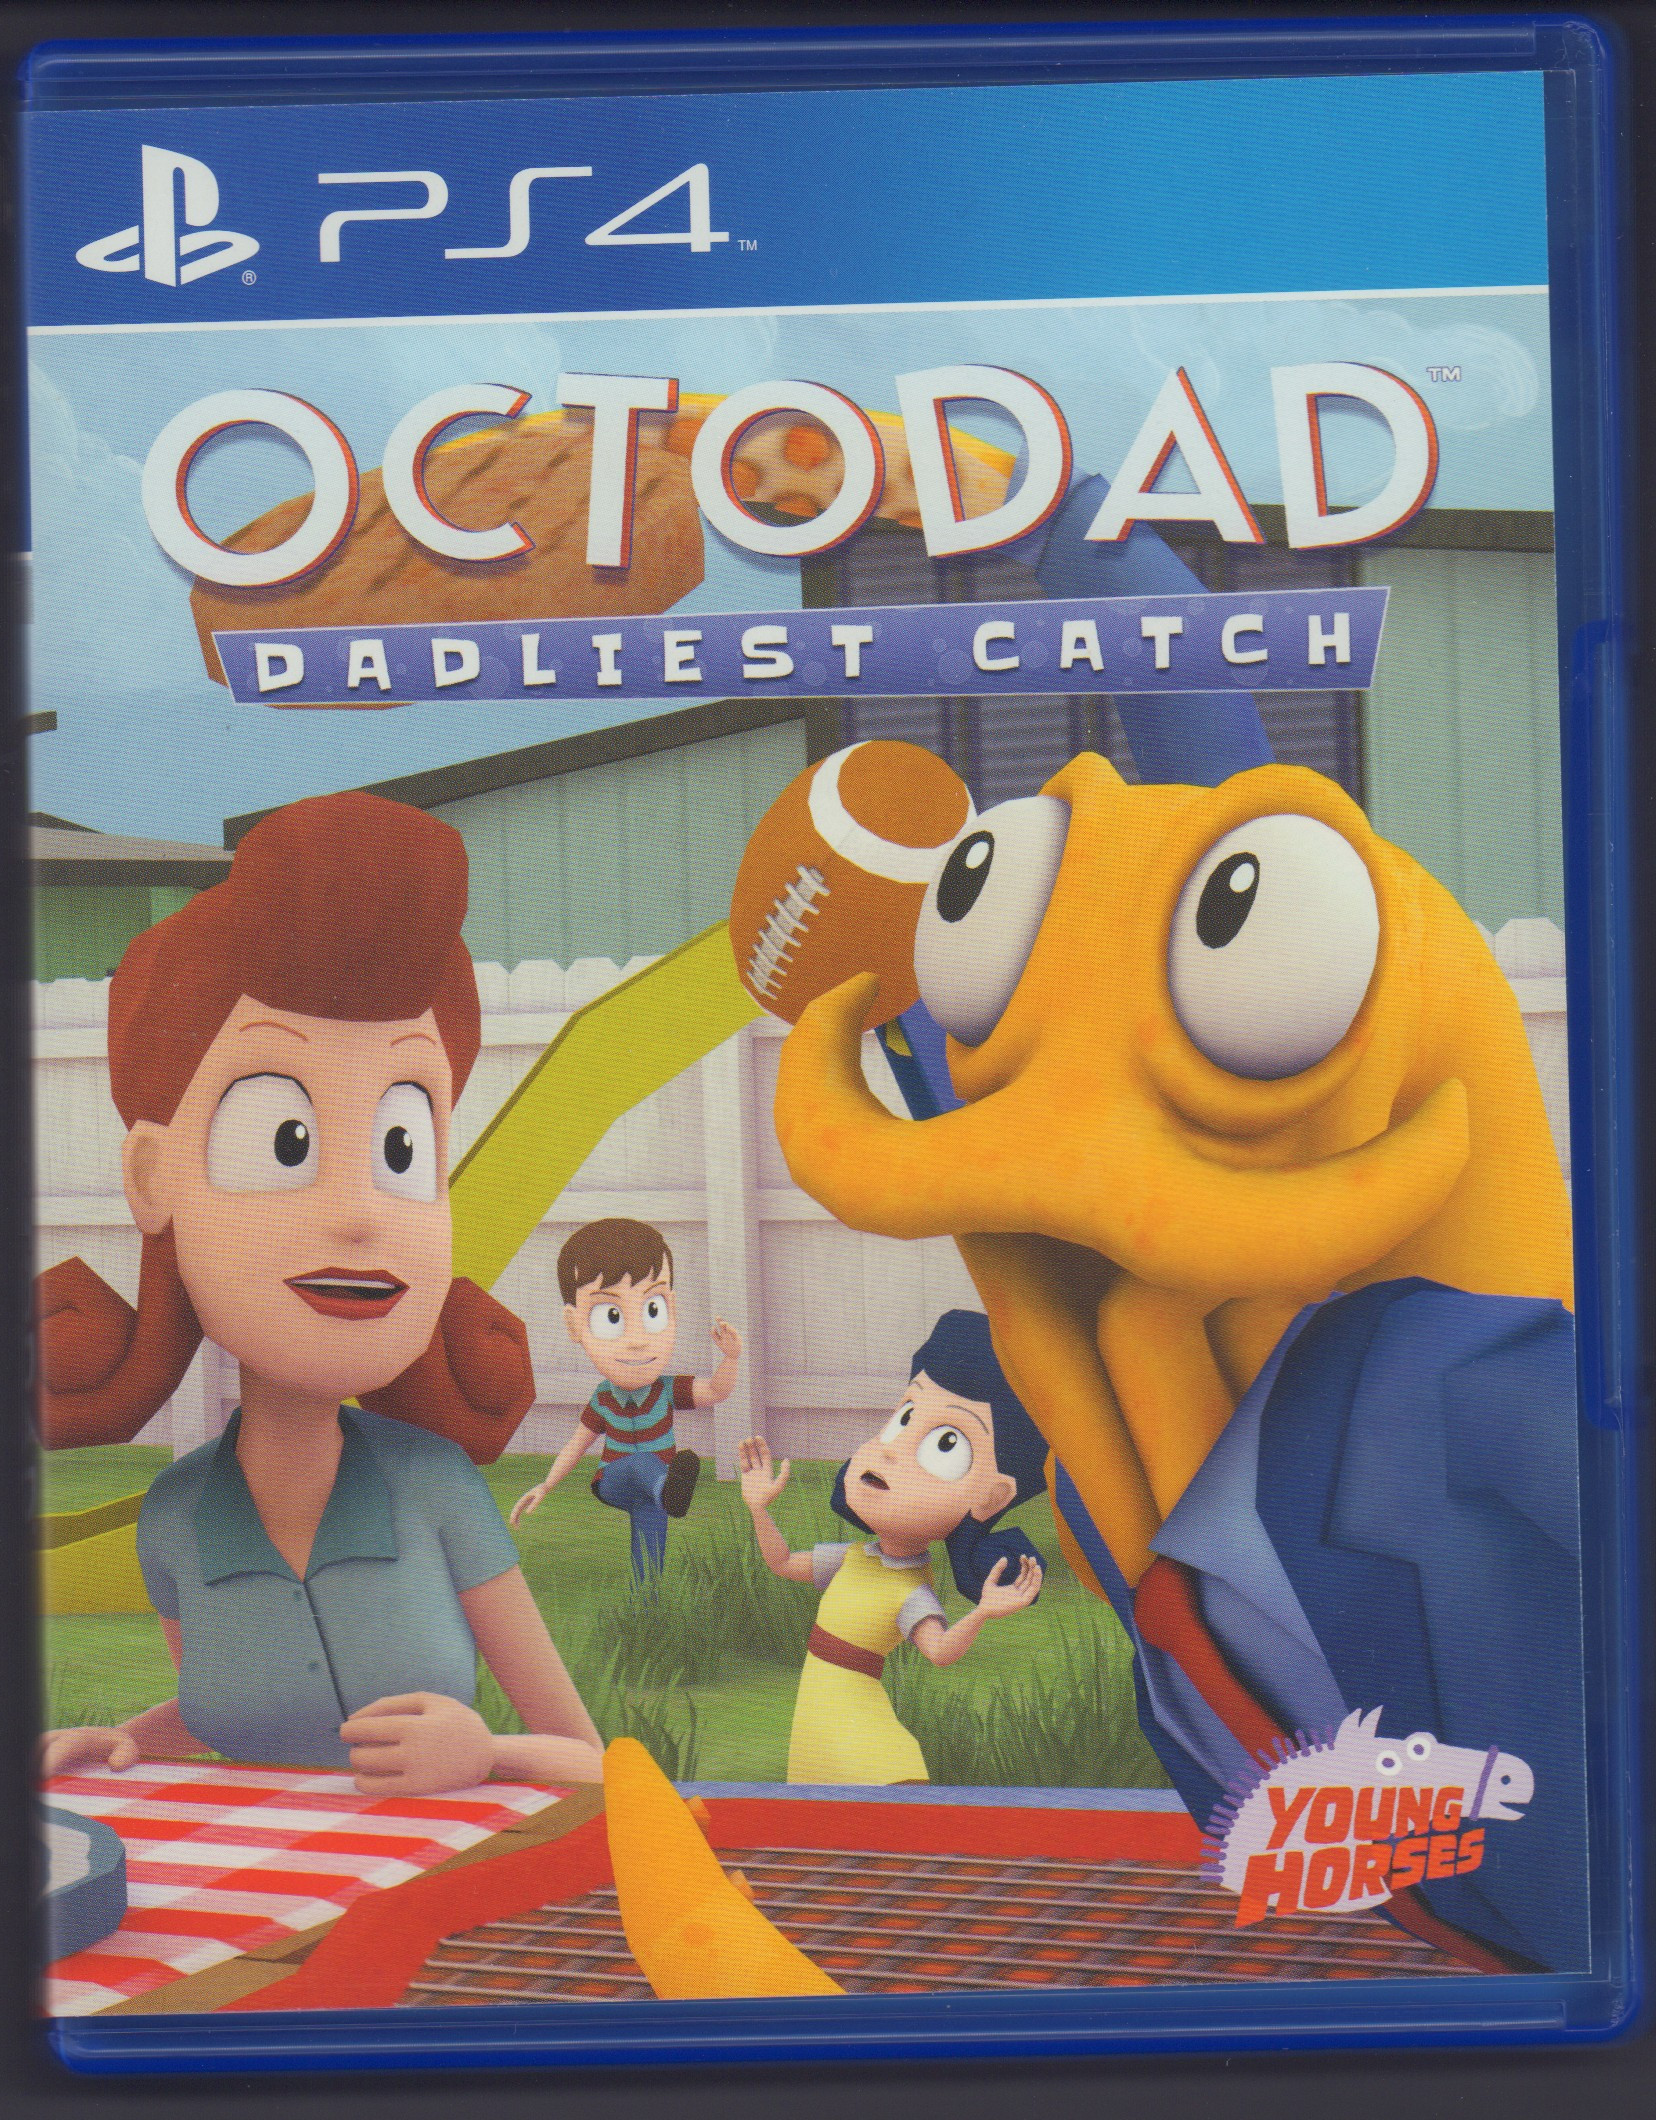 octodad dadliest catch for ps4 digital game museum collection